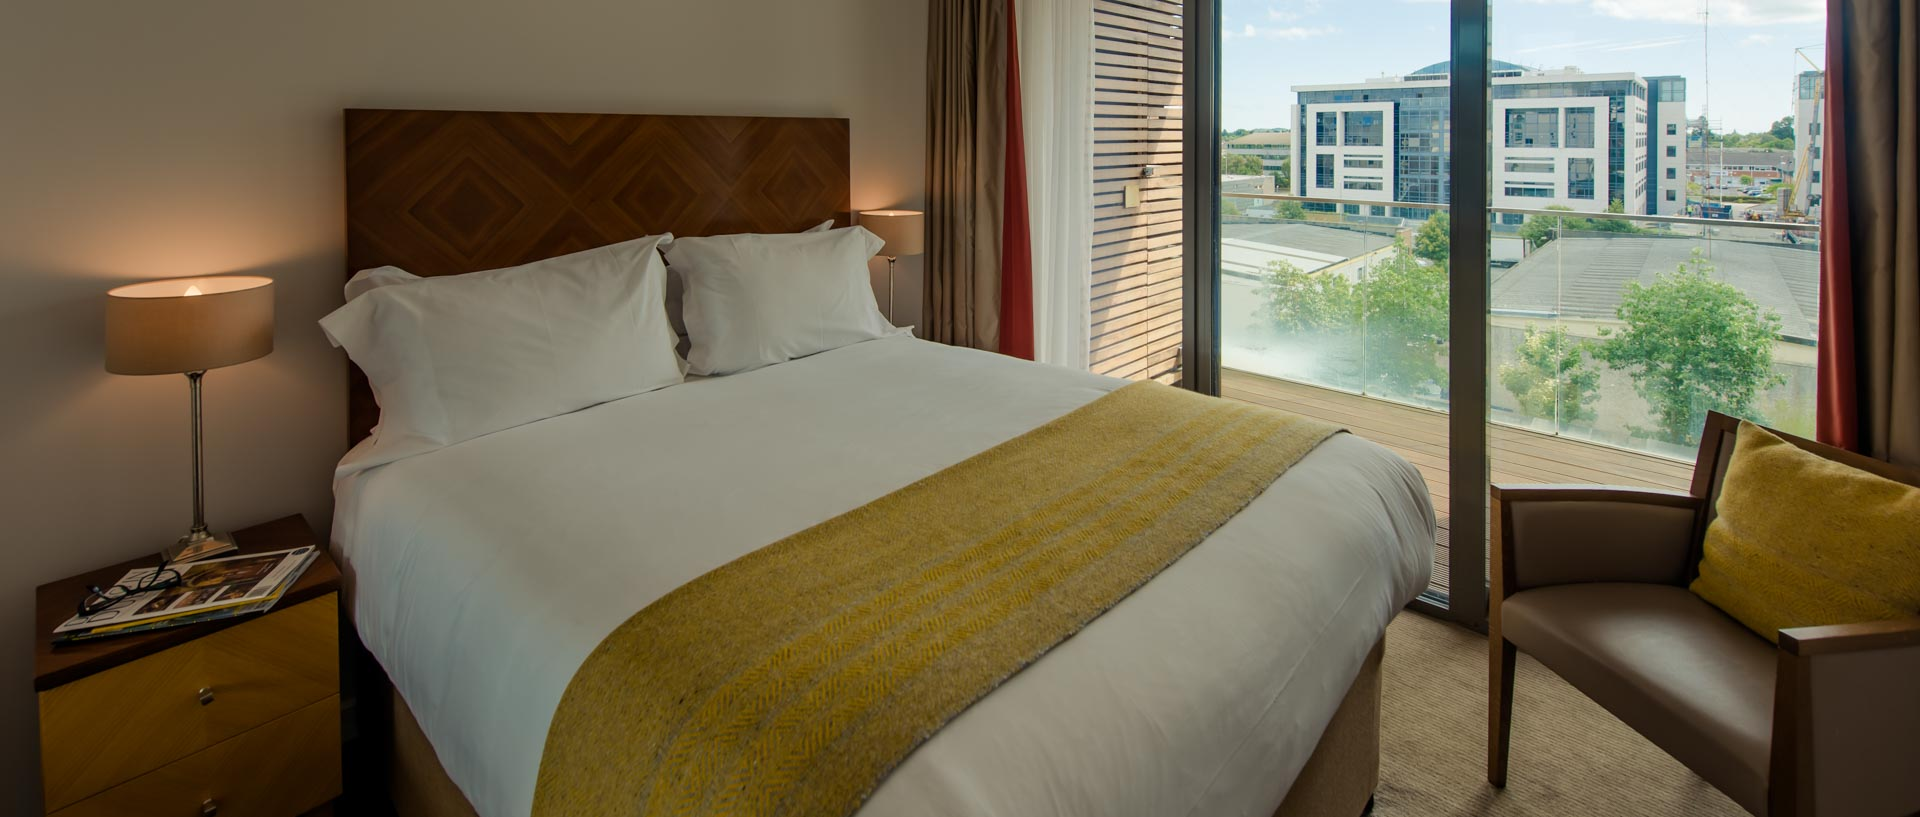 PREMIER_SUITES_Dublin Sandyford double bed and view